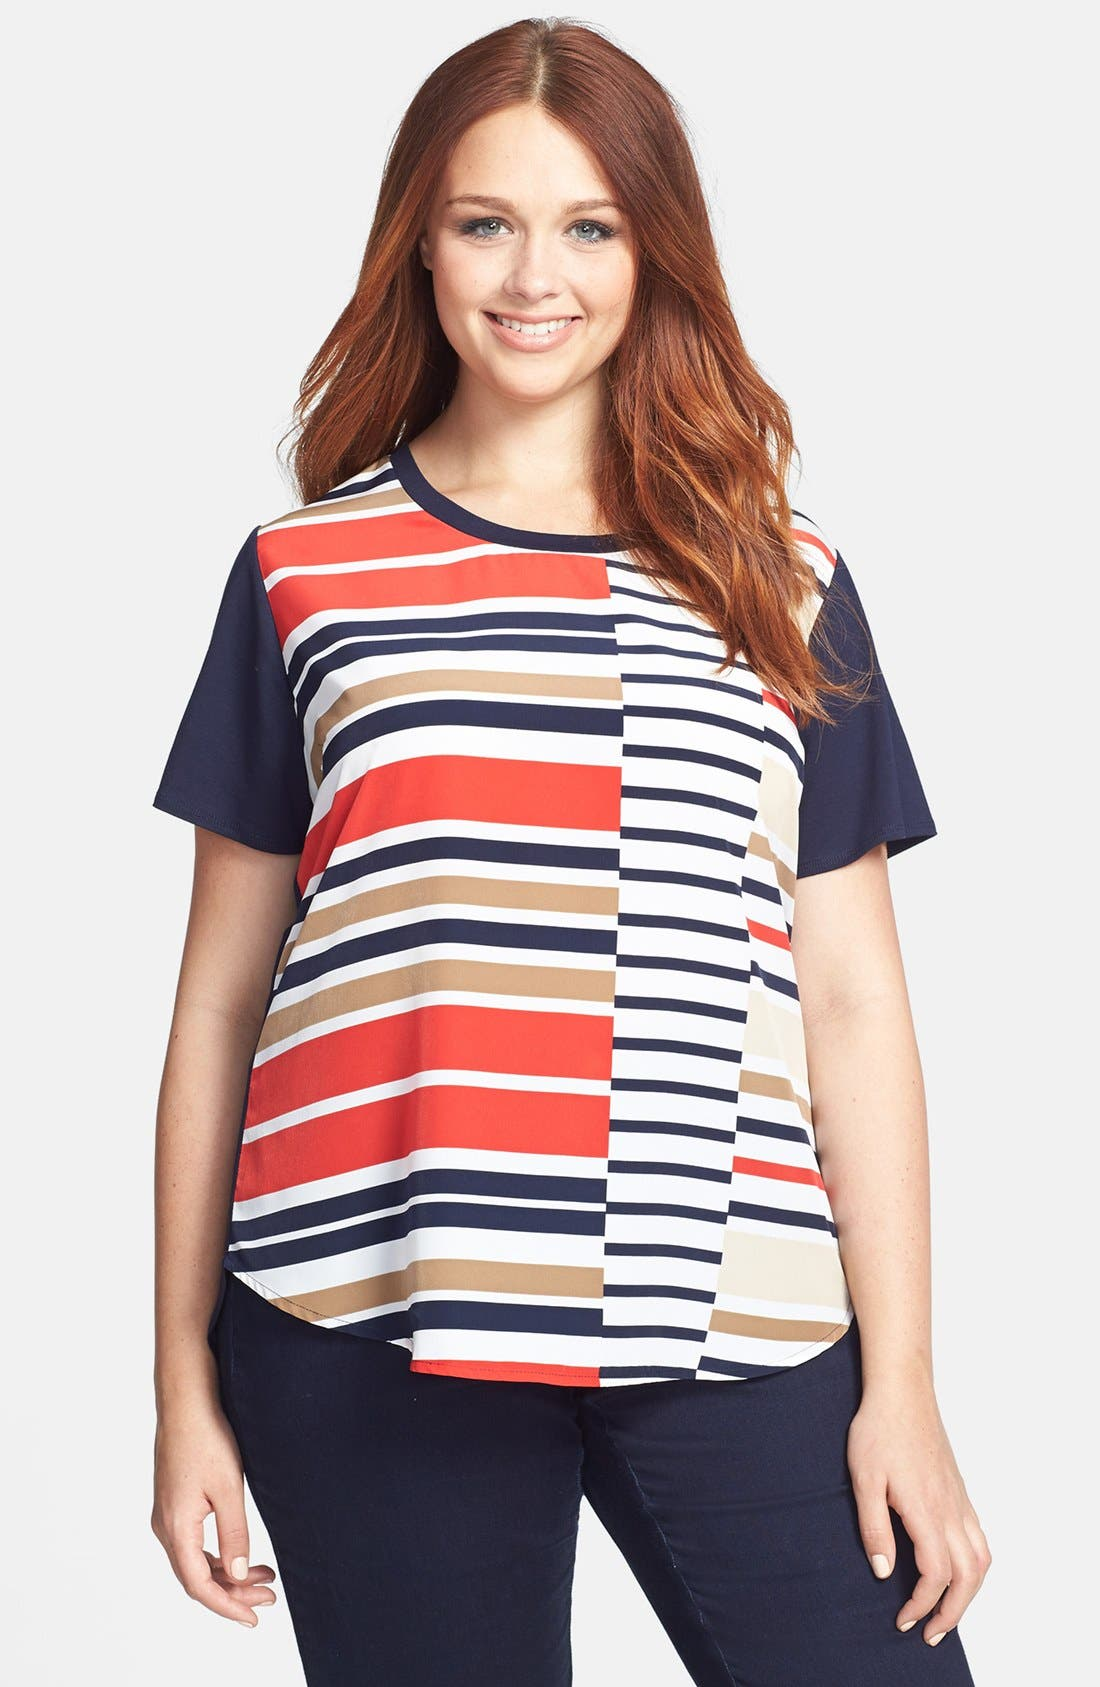 Alternate Image 1 Selected - Vince Camuto 'Legacy' Mixed Media Tee (Plus Size)